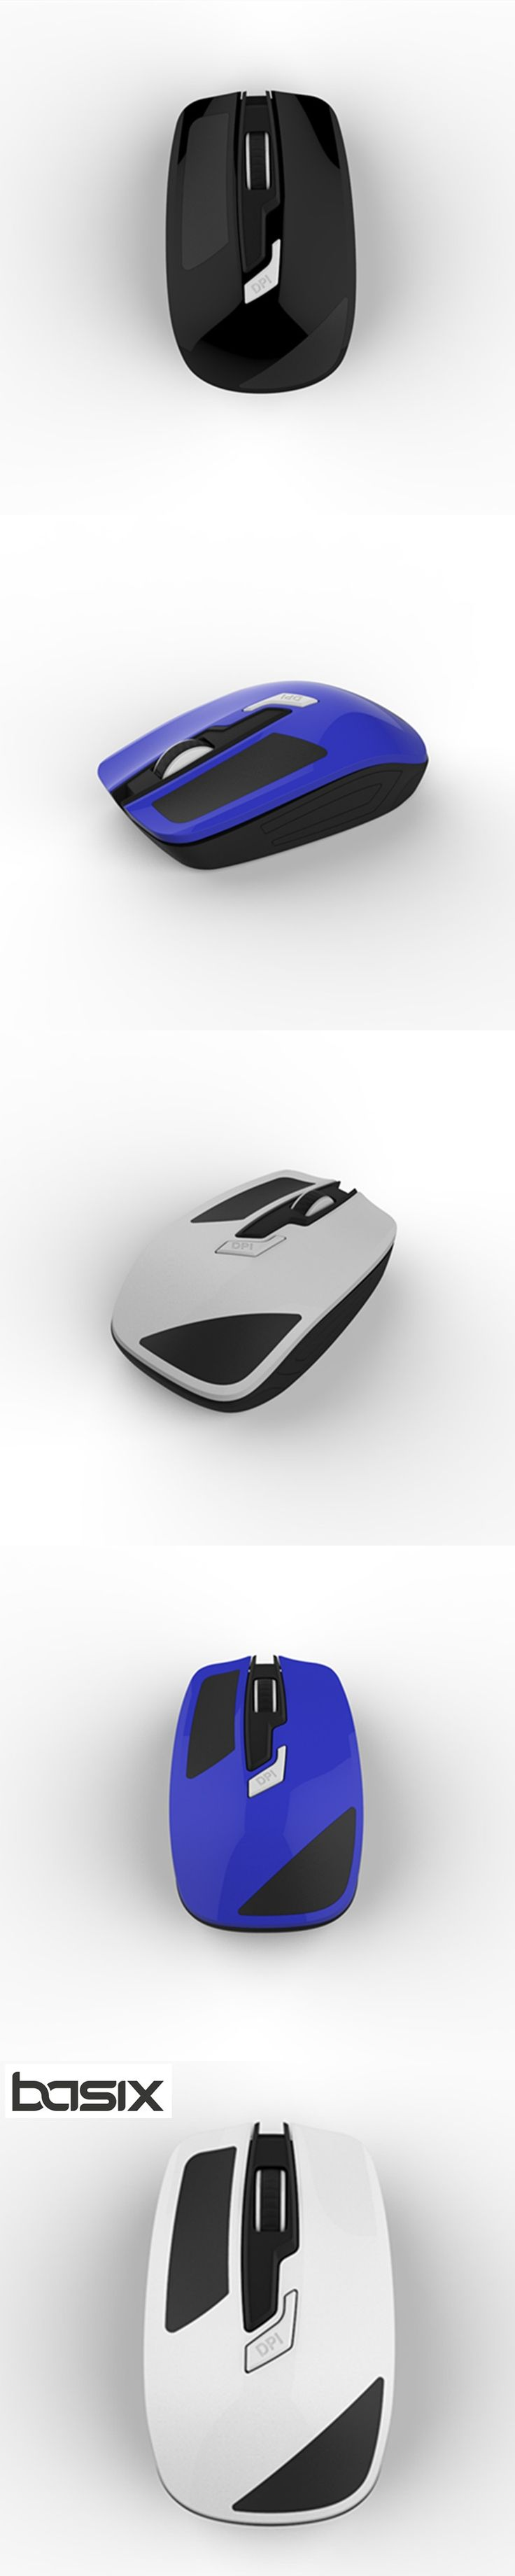 BASIX New  Mouse 2.4Ghz Wireless Optical Mouse Mute 1000 DPI for Mac PC Laptop Computer Mouse